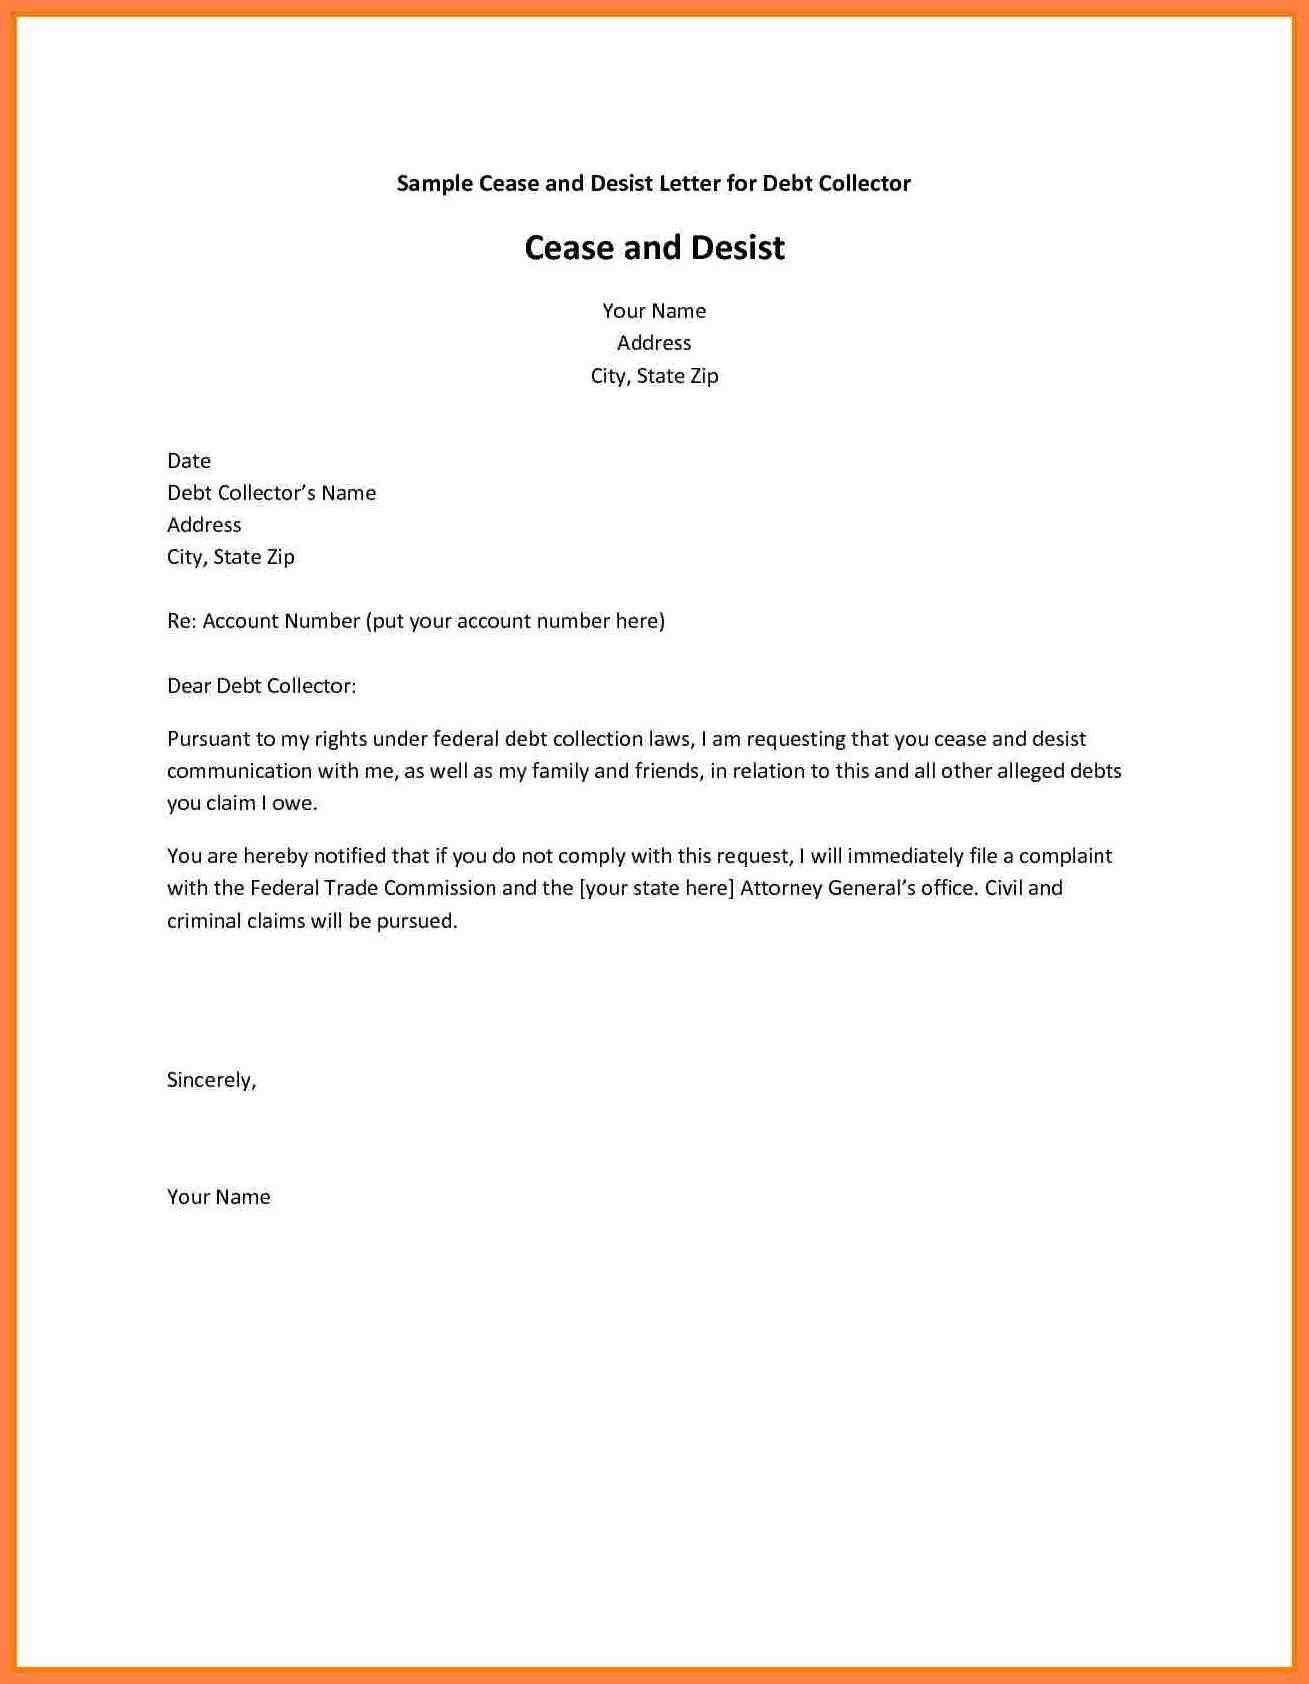 cease and desist creditor letter template cease and desist letter sample lovely best debt collection